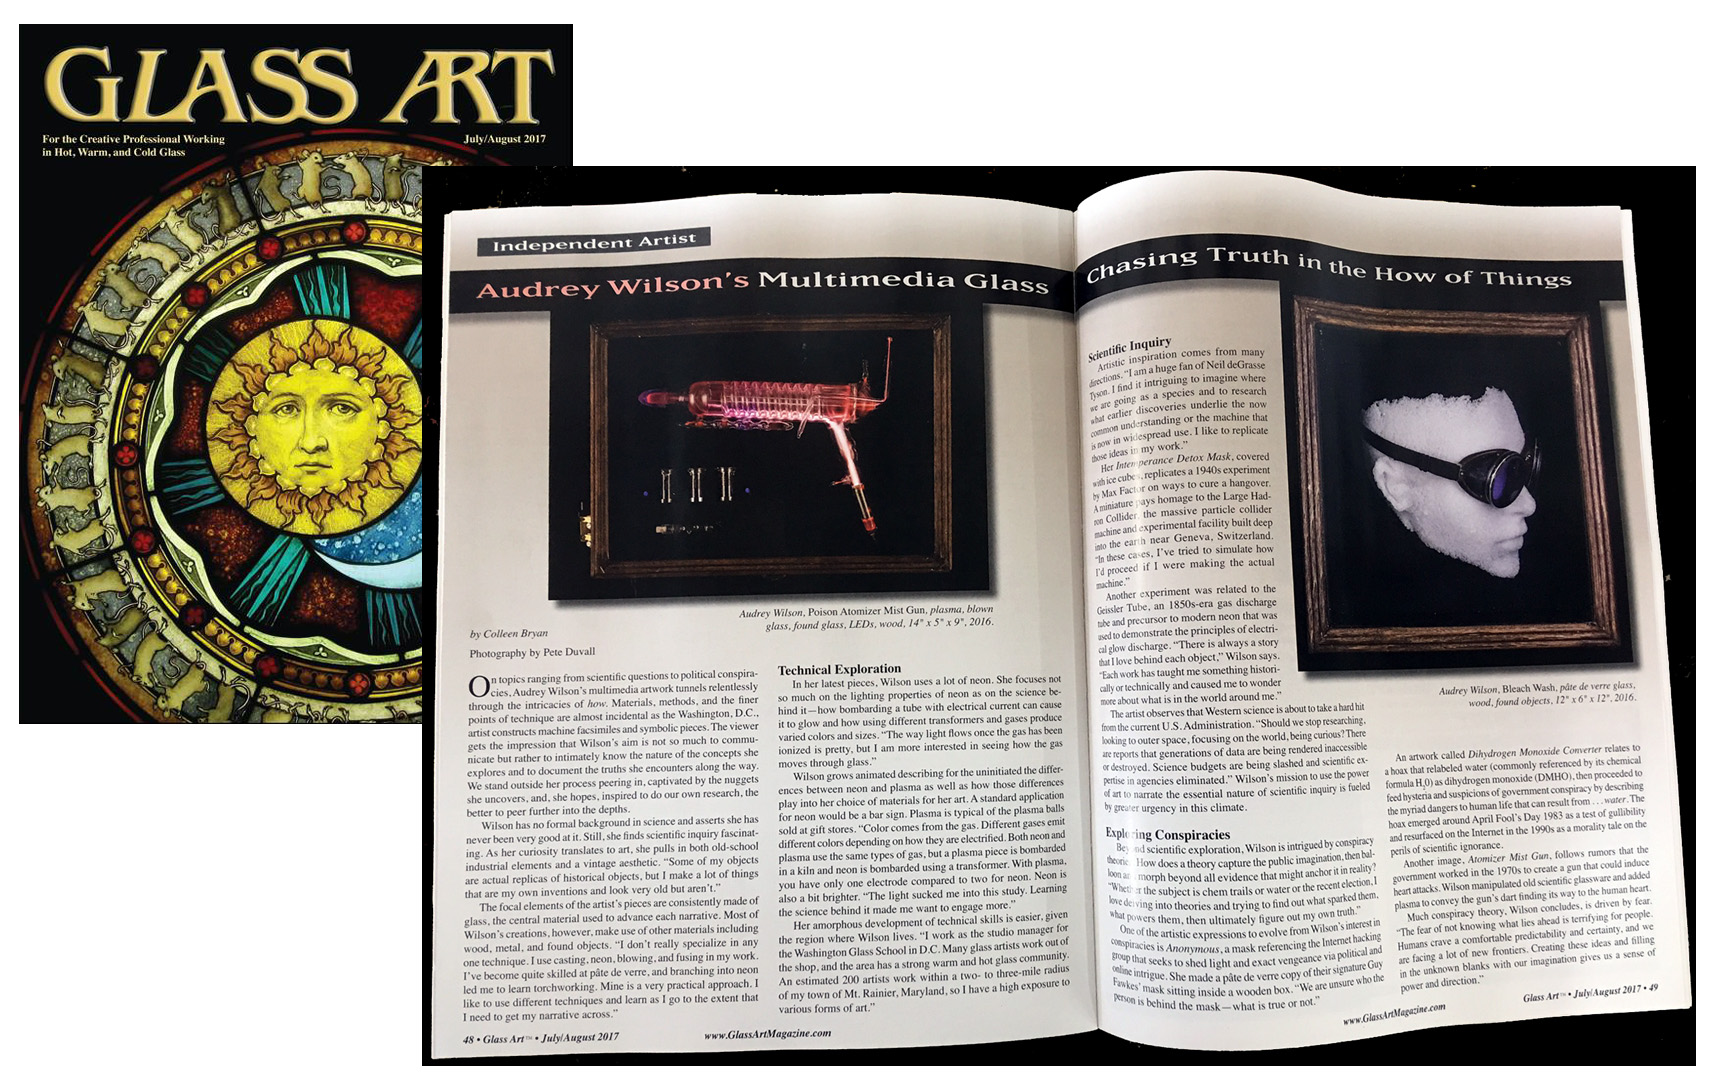 Glass Art Magazine features Audrey Wilson in the July/August issue